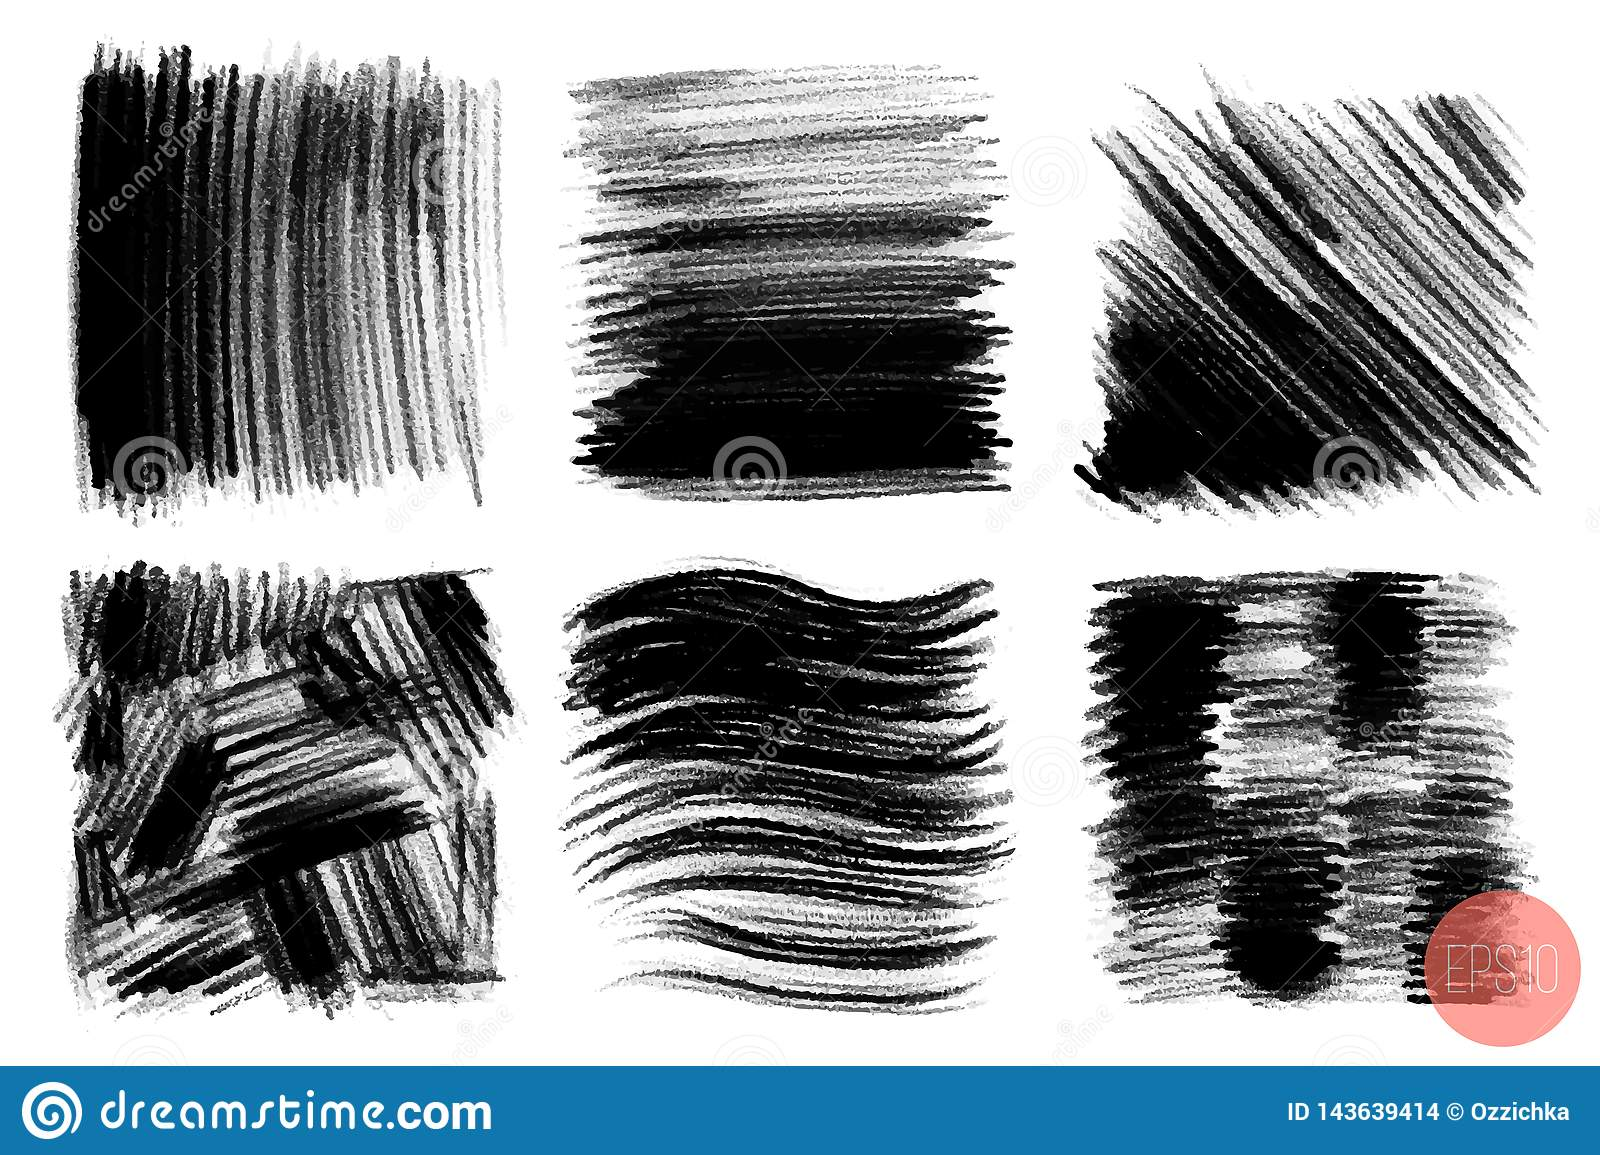 Vector Set Of Hand Drawn Brush Strokes Stains For Backdrops Greyscale Design Elements Set Aartistic Hand Drawn Stock Vector Illustration Of Silhouette Border 143639414